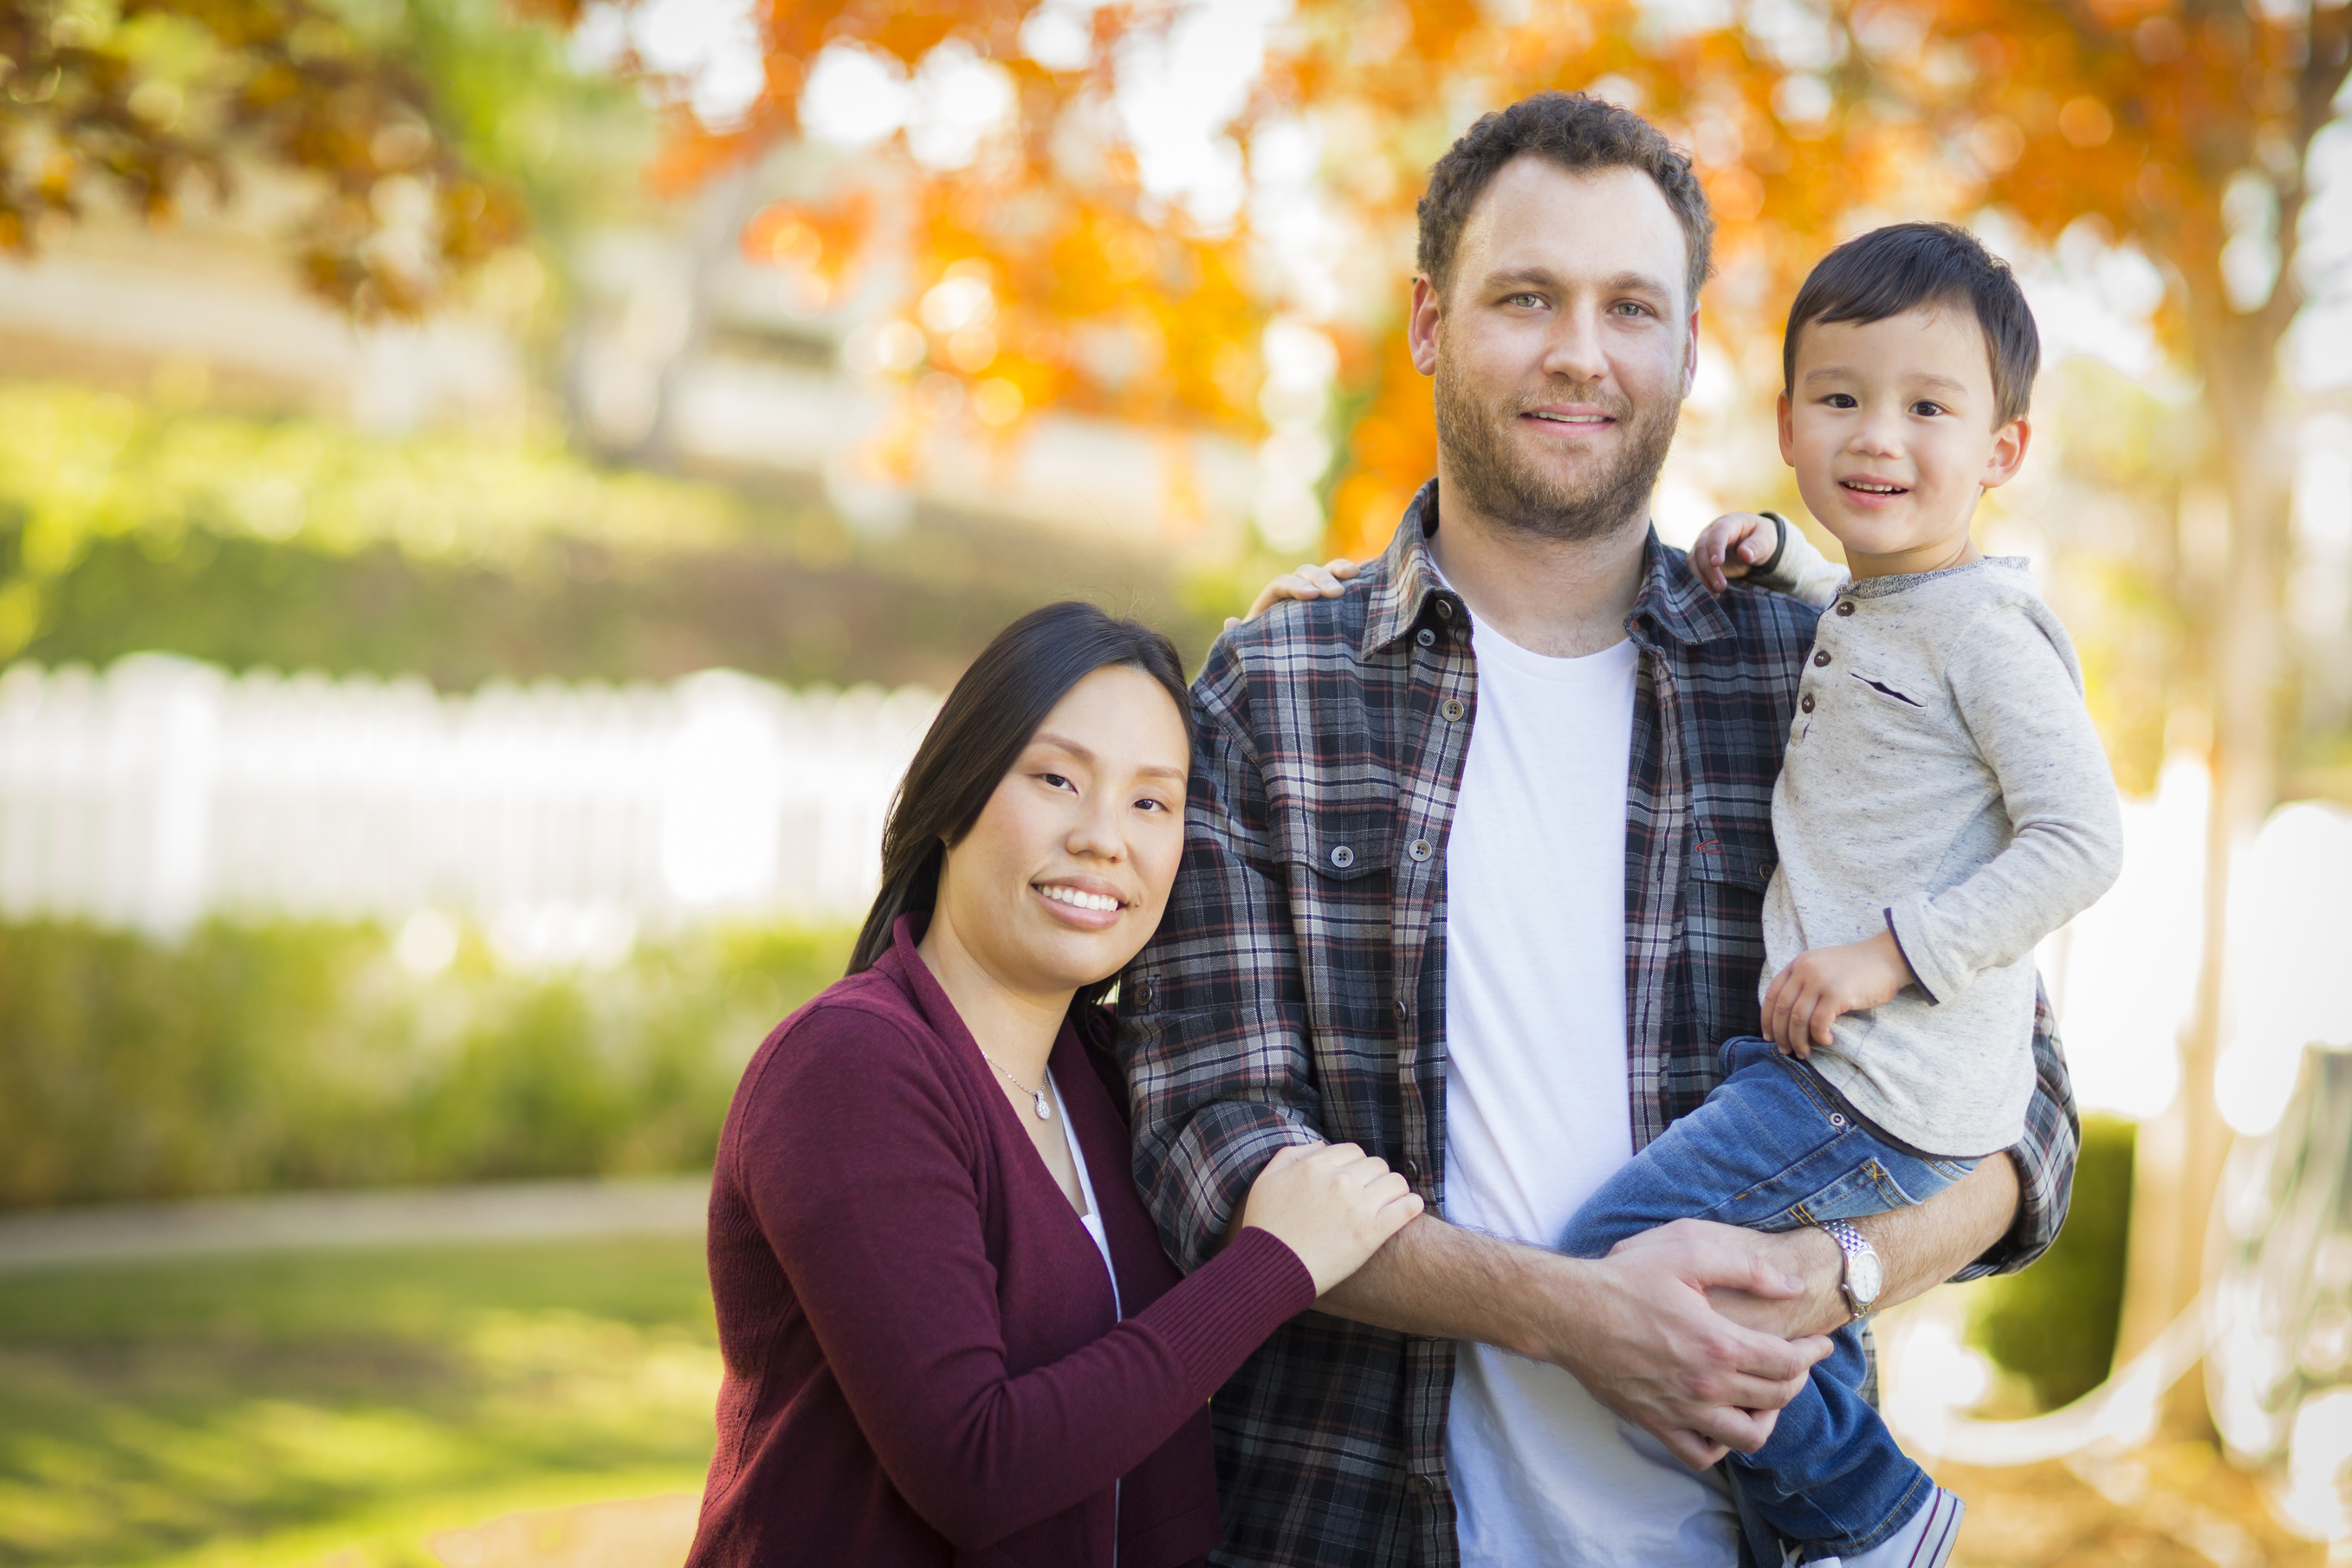 Mixed Race Young Family Portrait Outdoors